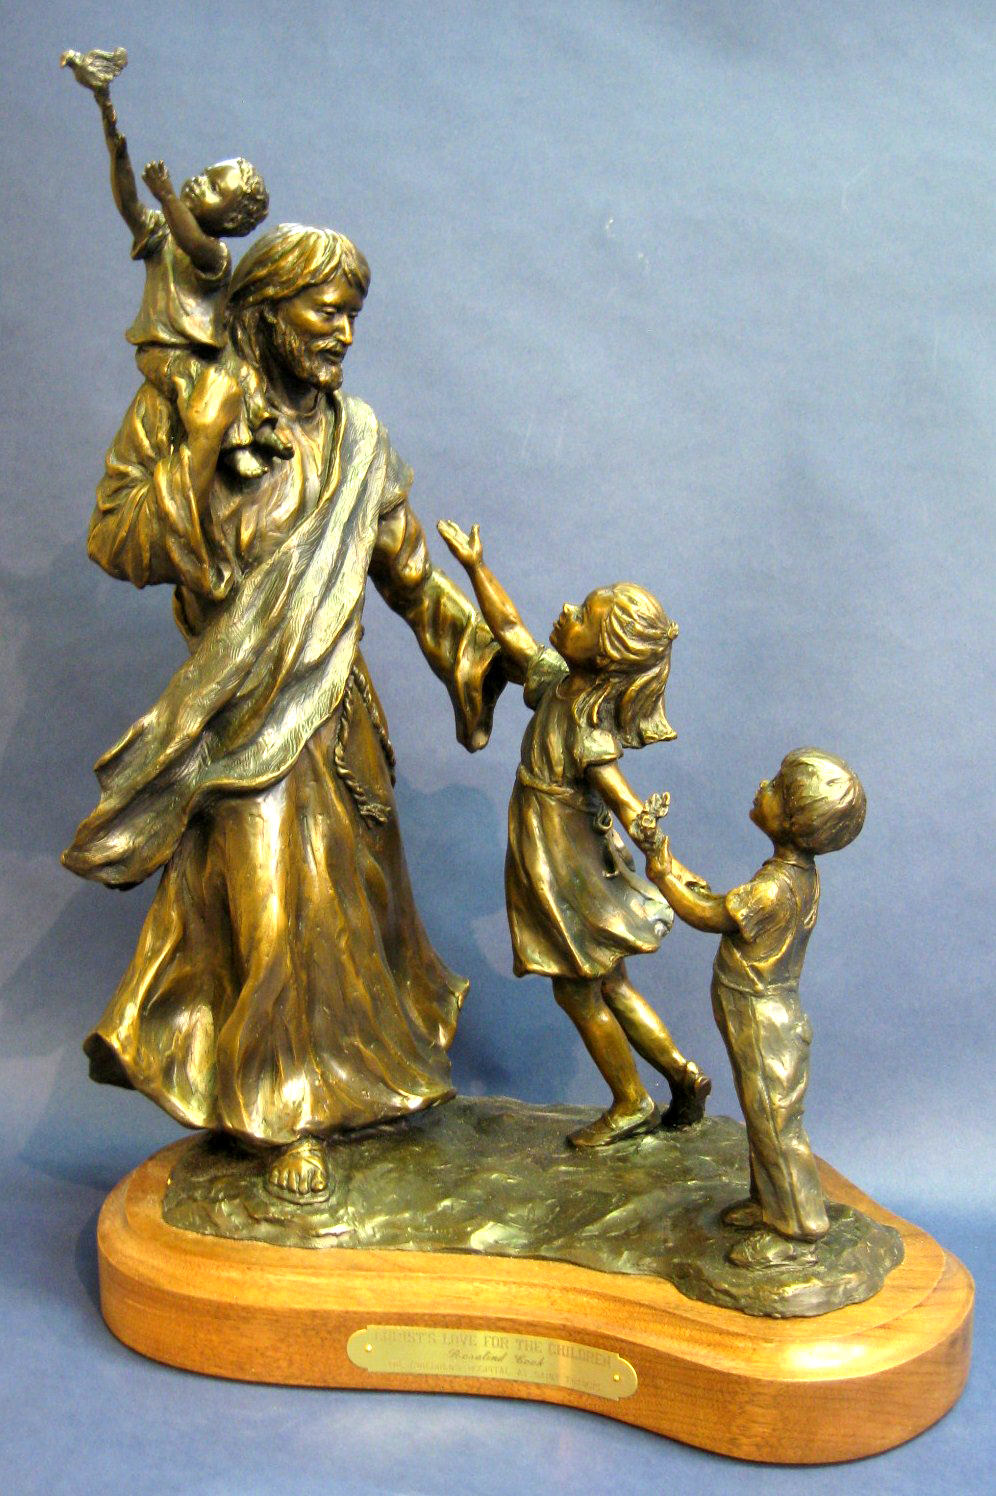 christs-love-for-the-children-rosalind-cook-small.jpg